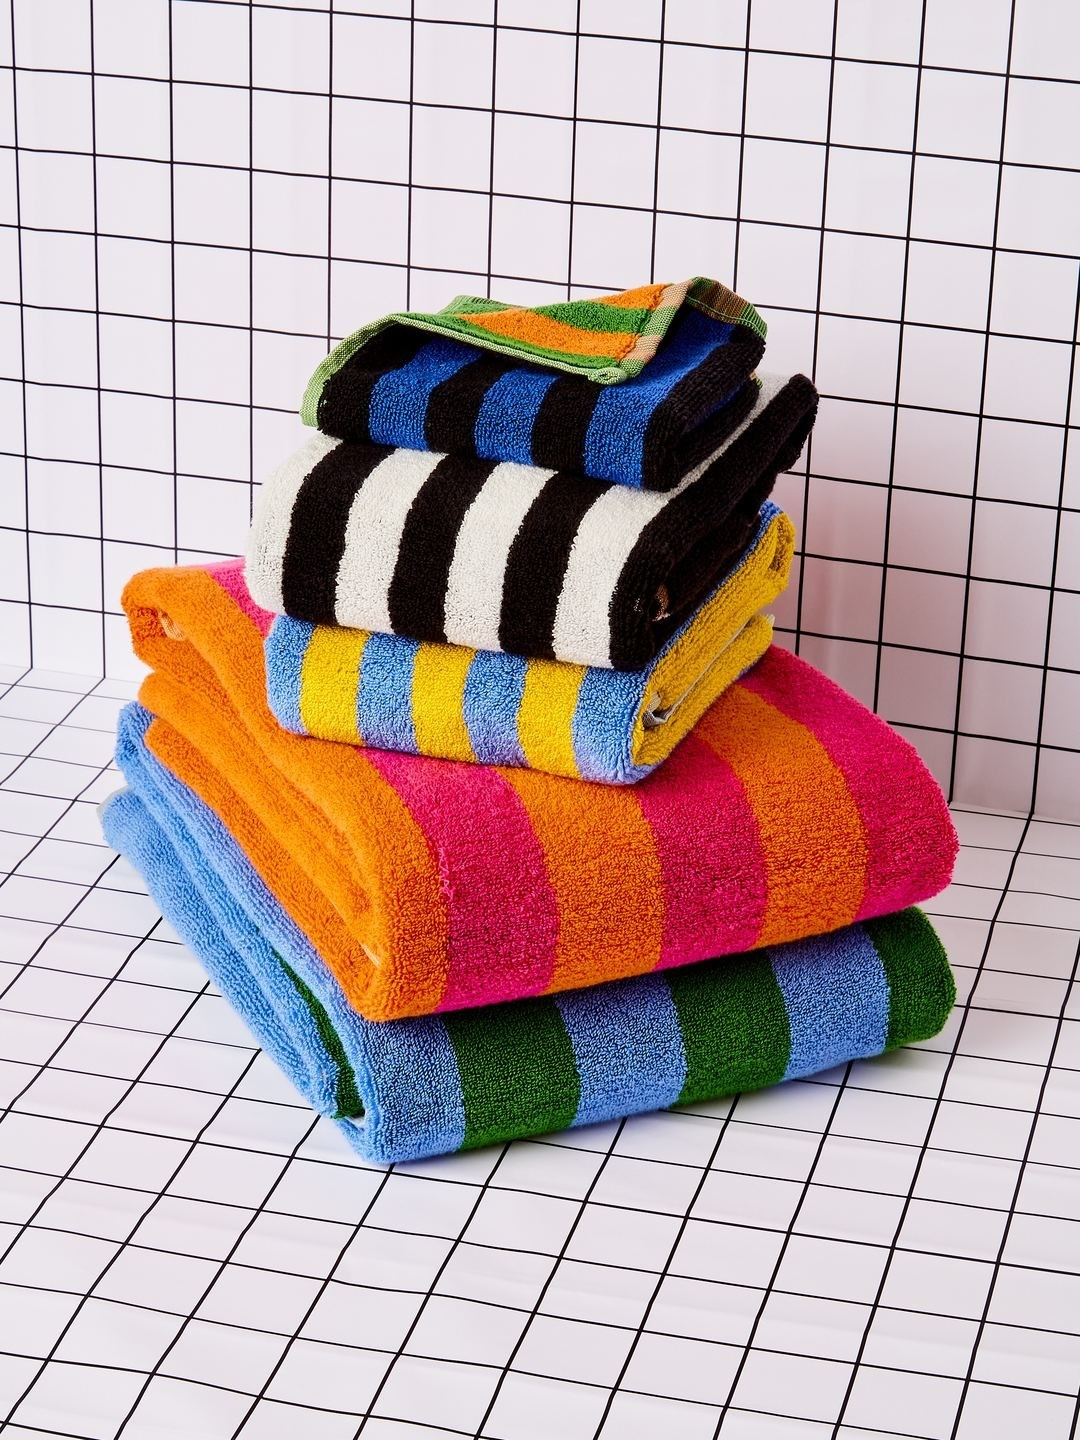 The multicolored striped towels